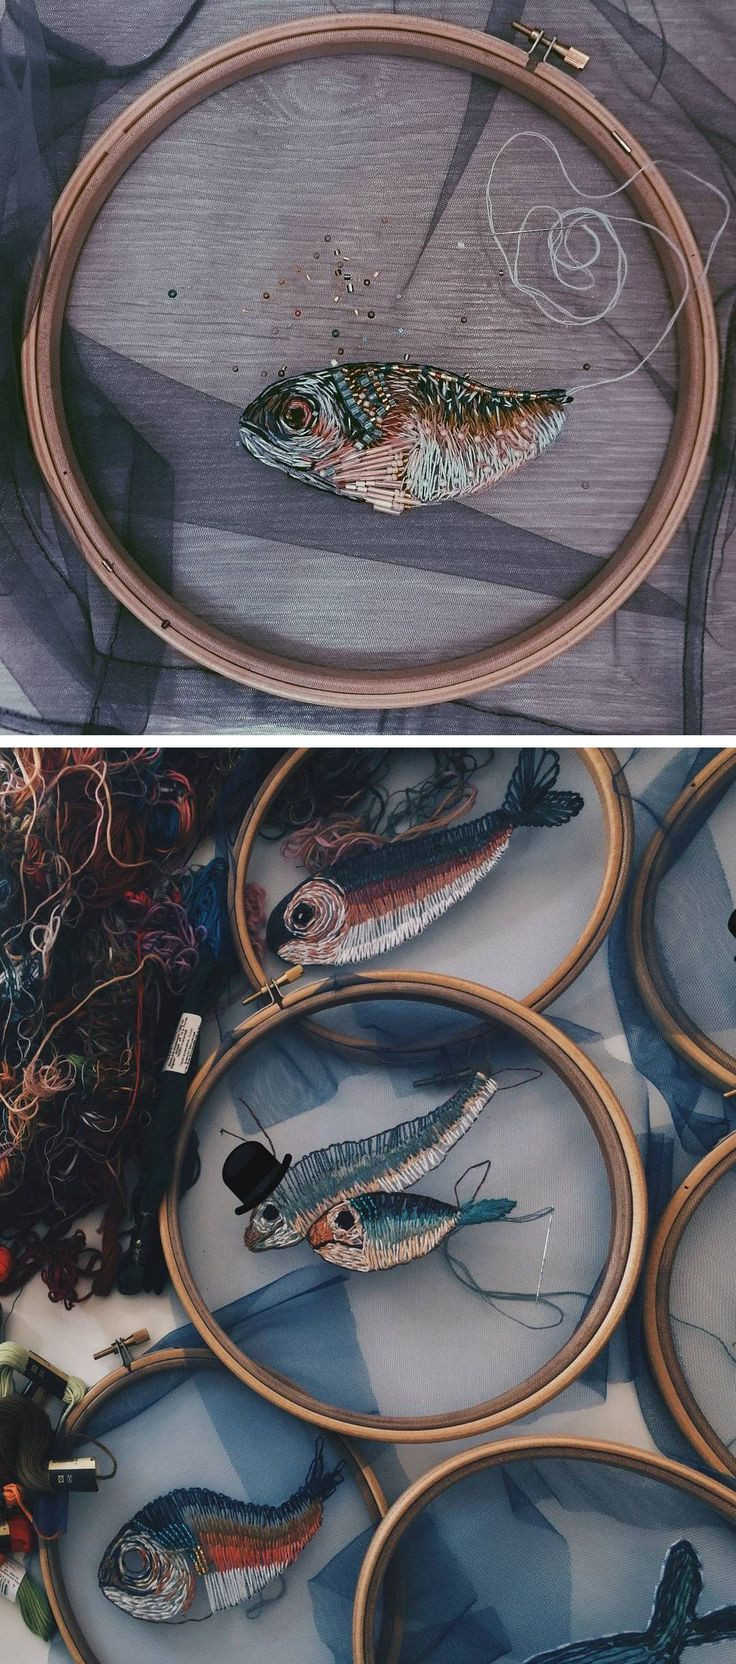 wonder if this would work for needle felting.  Fish embroidery on tulle // hoop art // optical illusion embroidery